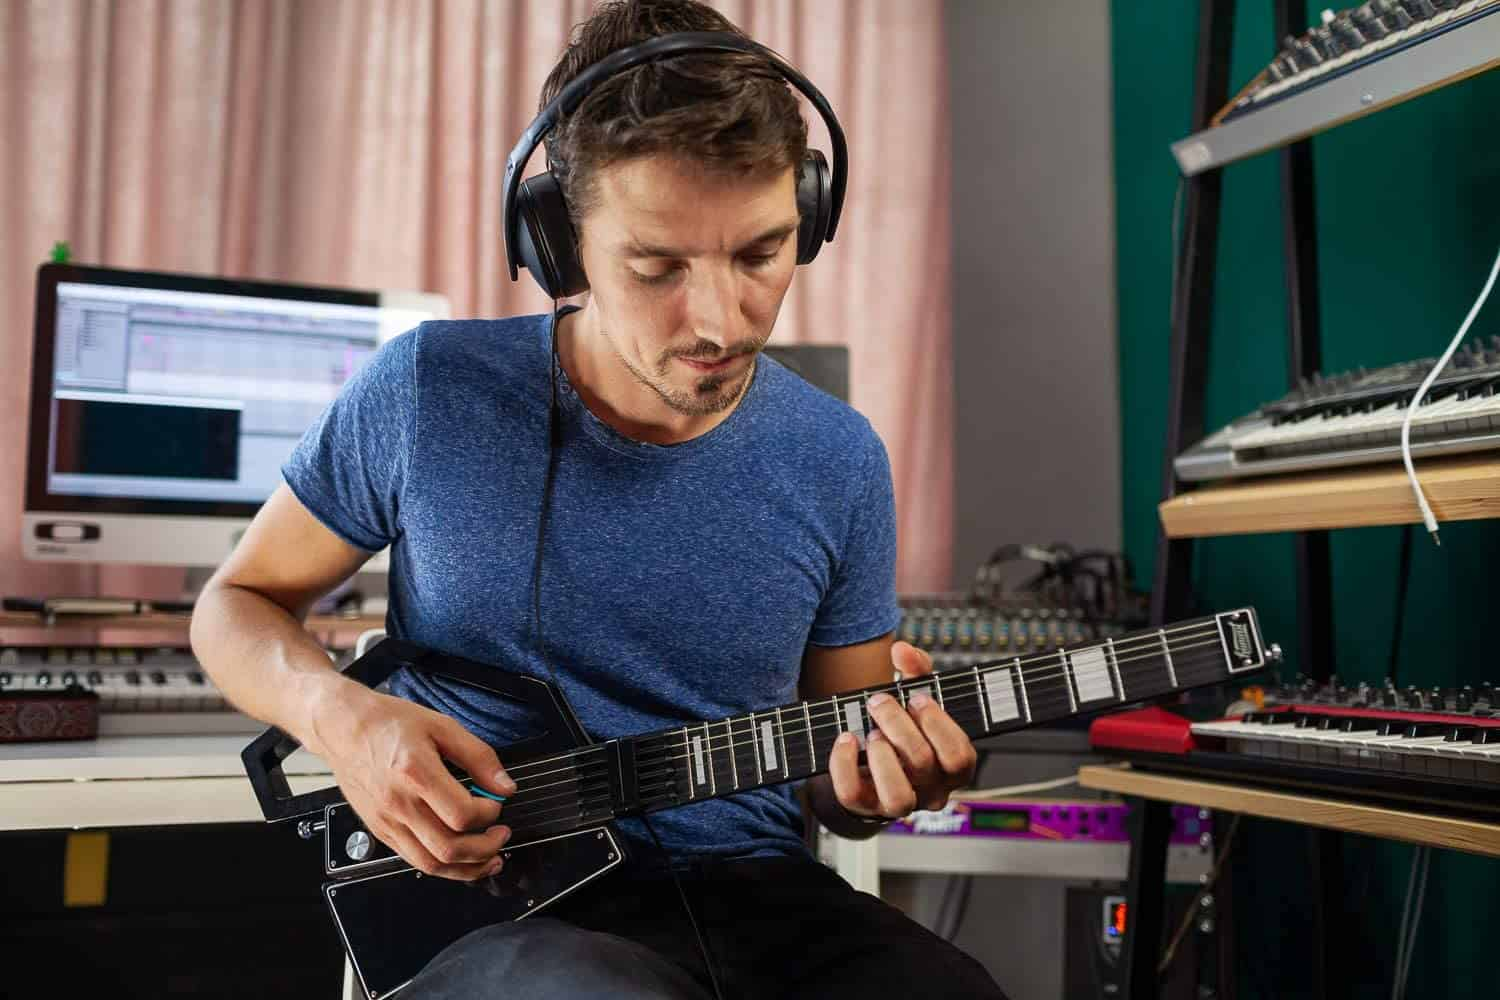 Overall best MIDI guitar- JAMMY G (Jammy Guitar) App-Enabled Digital MIDI Guitarbeing used